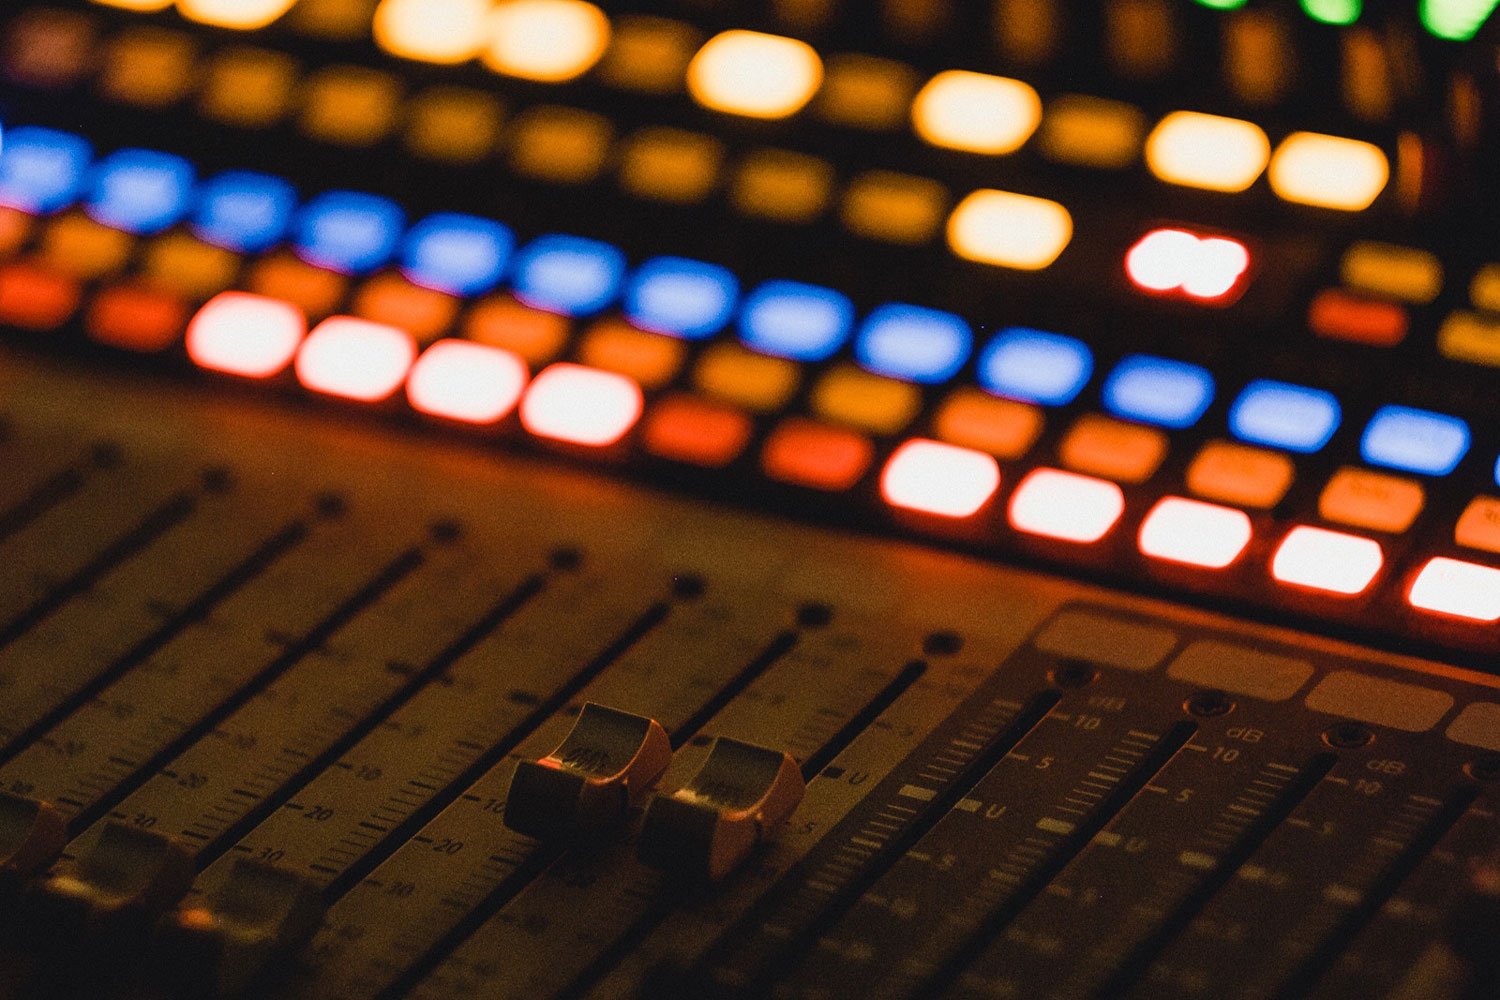 7 Ways to Make a Sample Completely Your Own